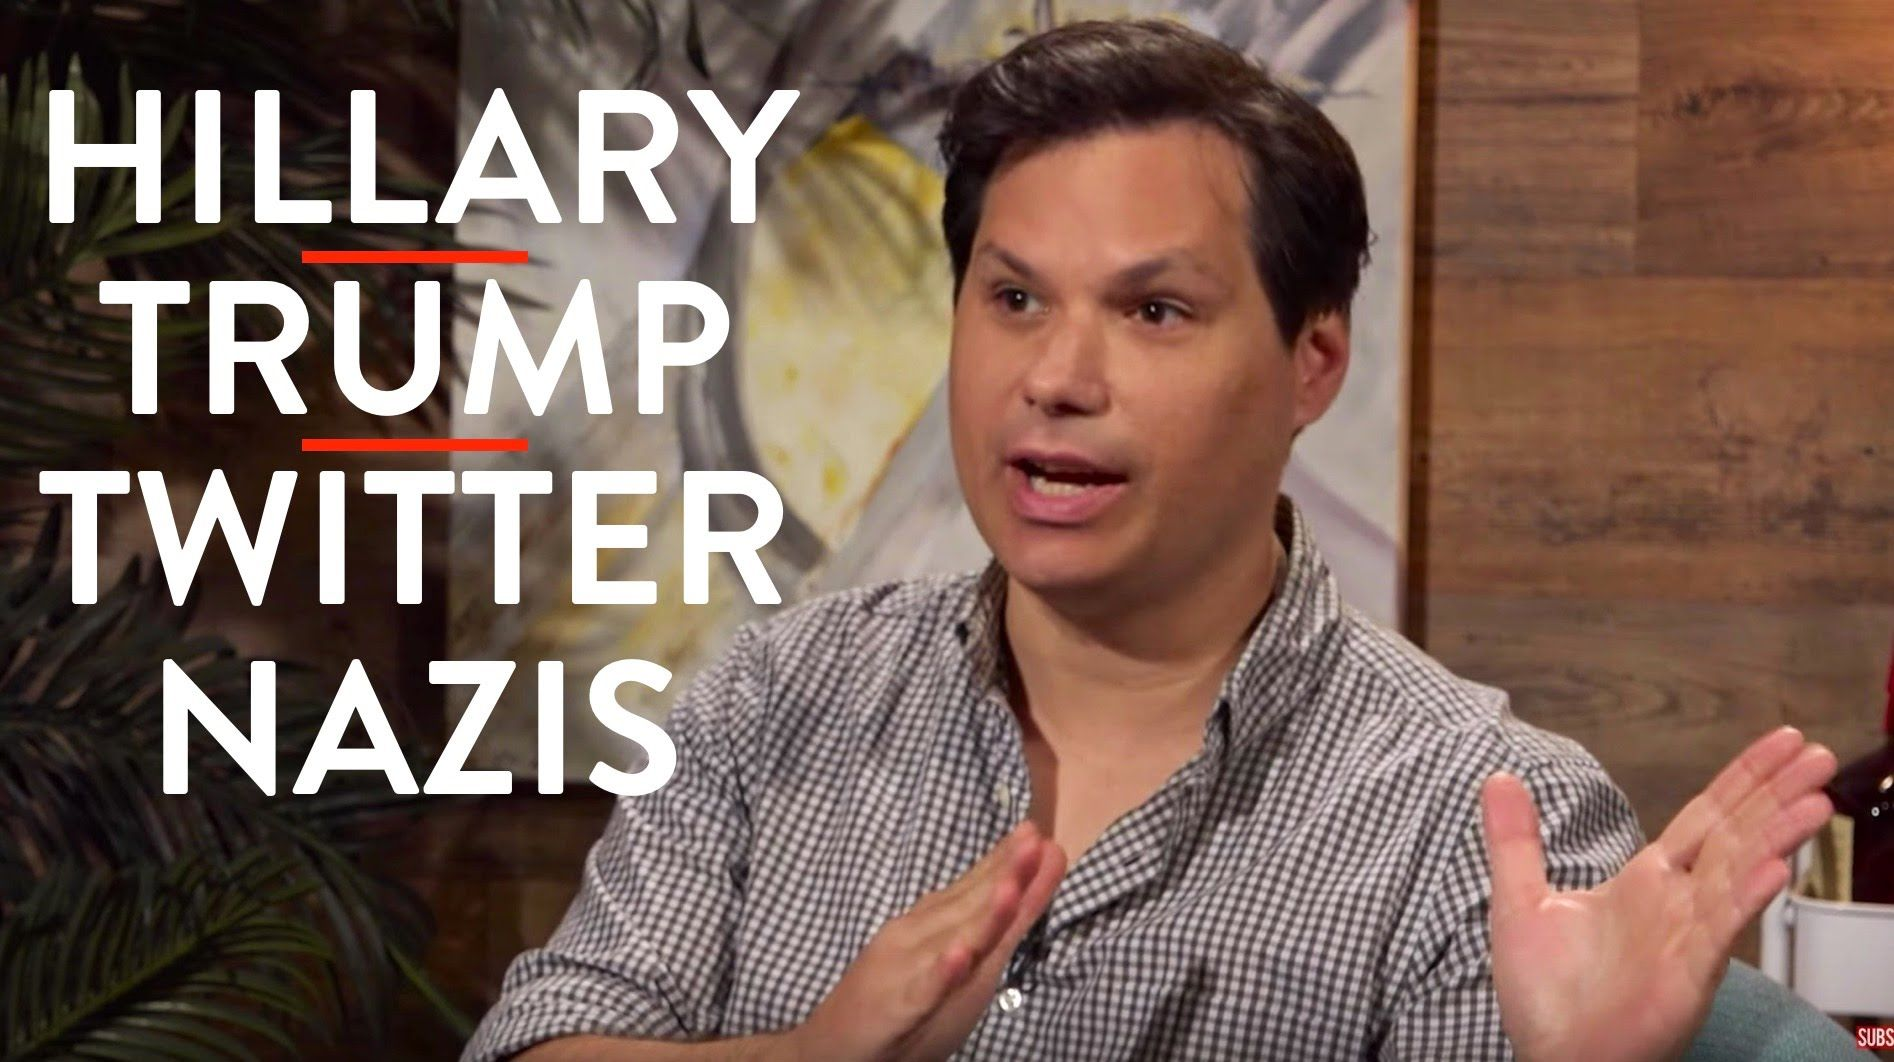 Watched 2016.07.21 | Michael Ian Black on Hillary vs Trump and Twitter Nazis (Part 1)